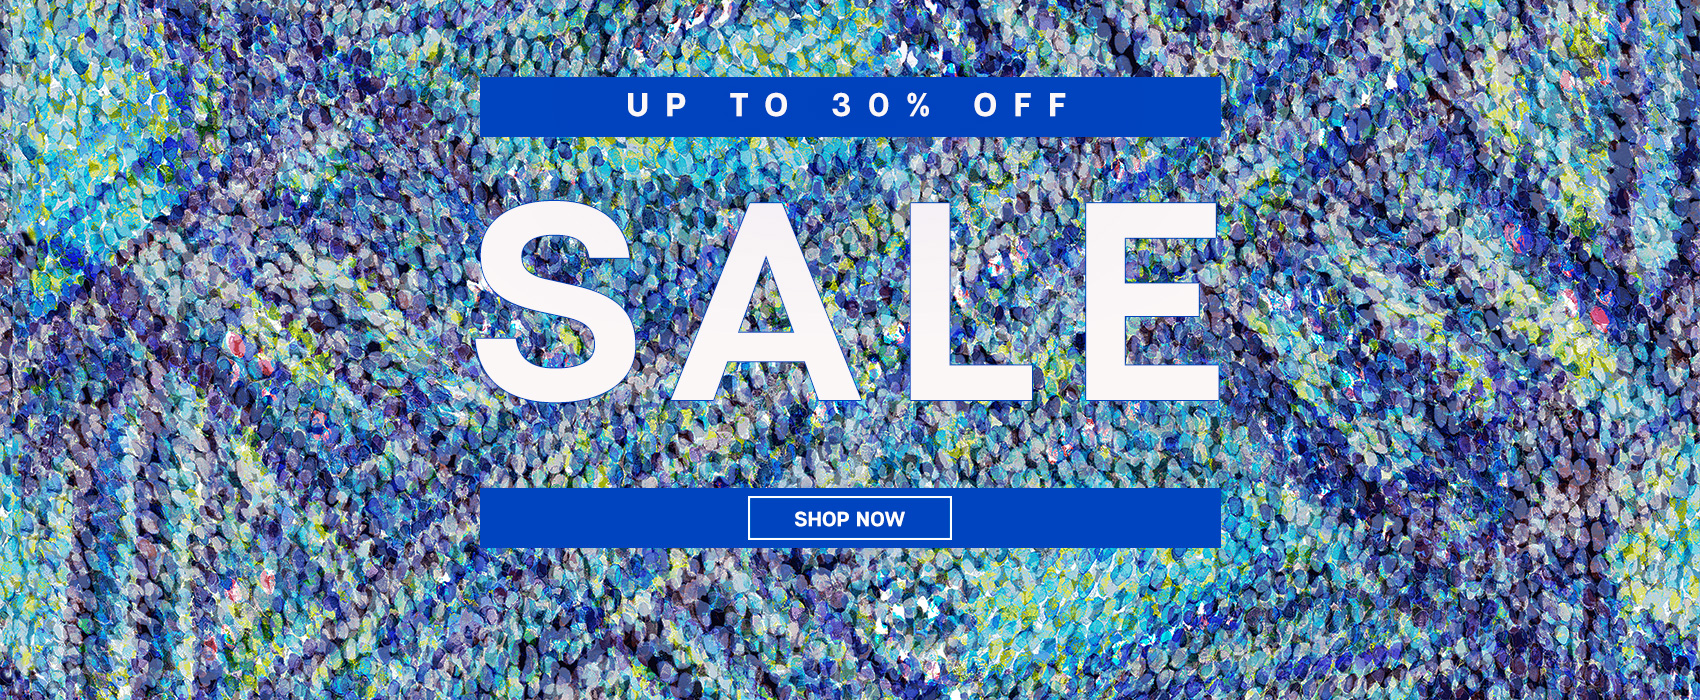 Dashfashion: Sale up to 30% off women's casual fashion and accessories